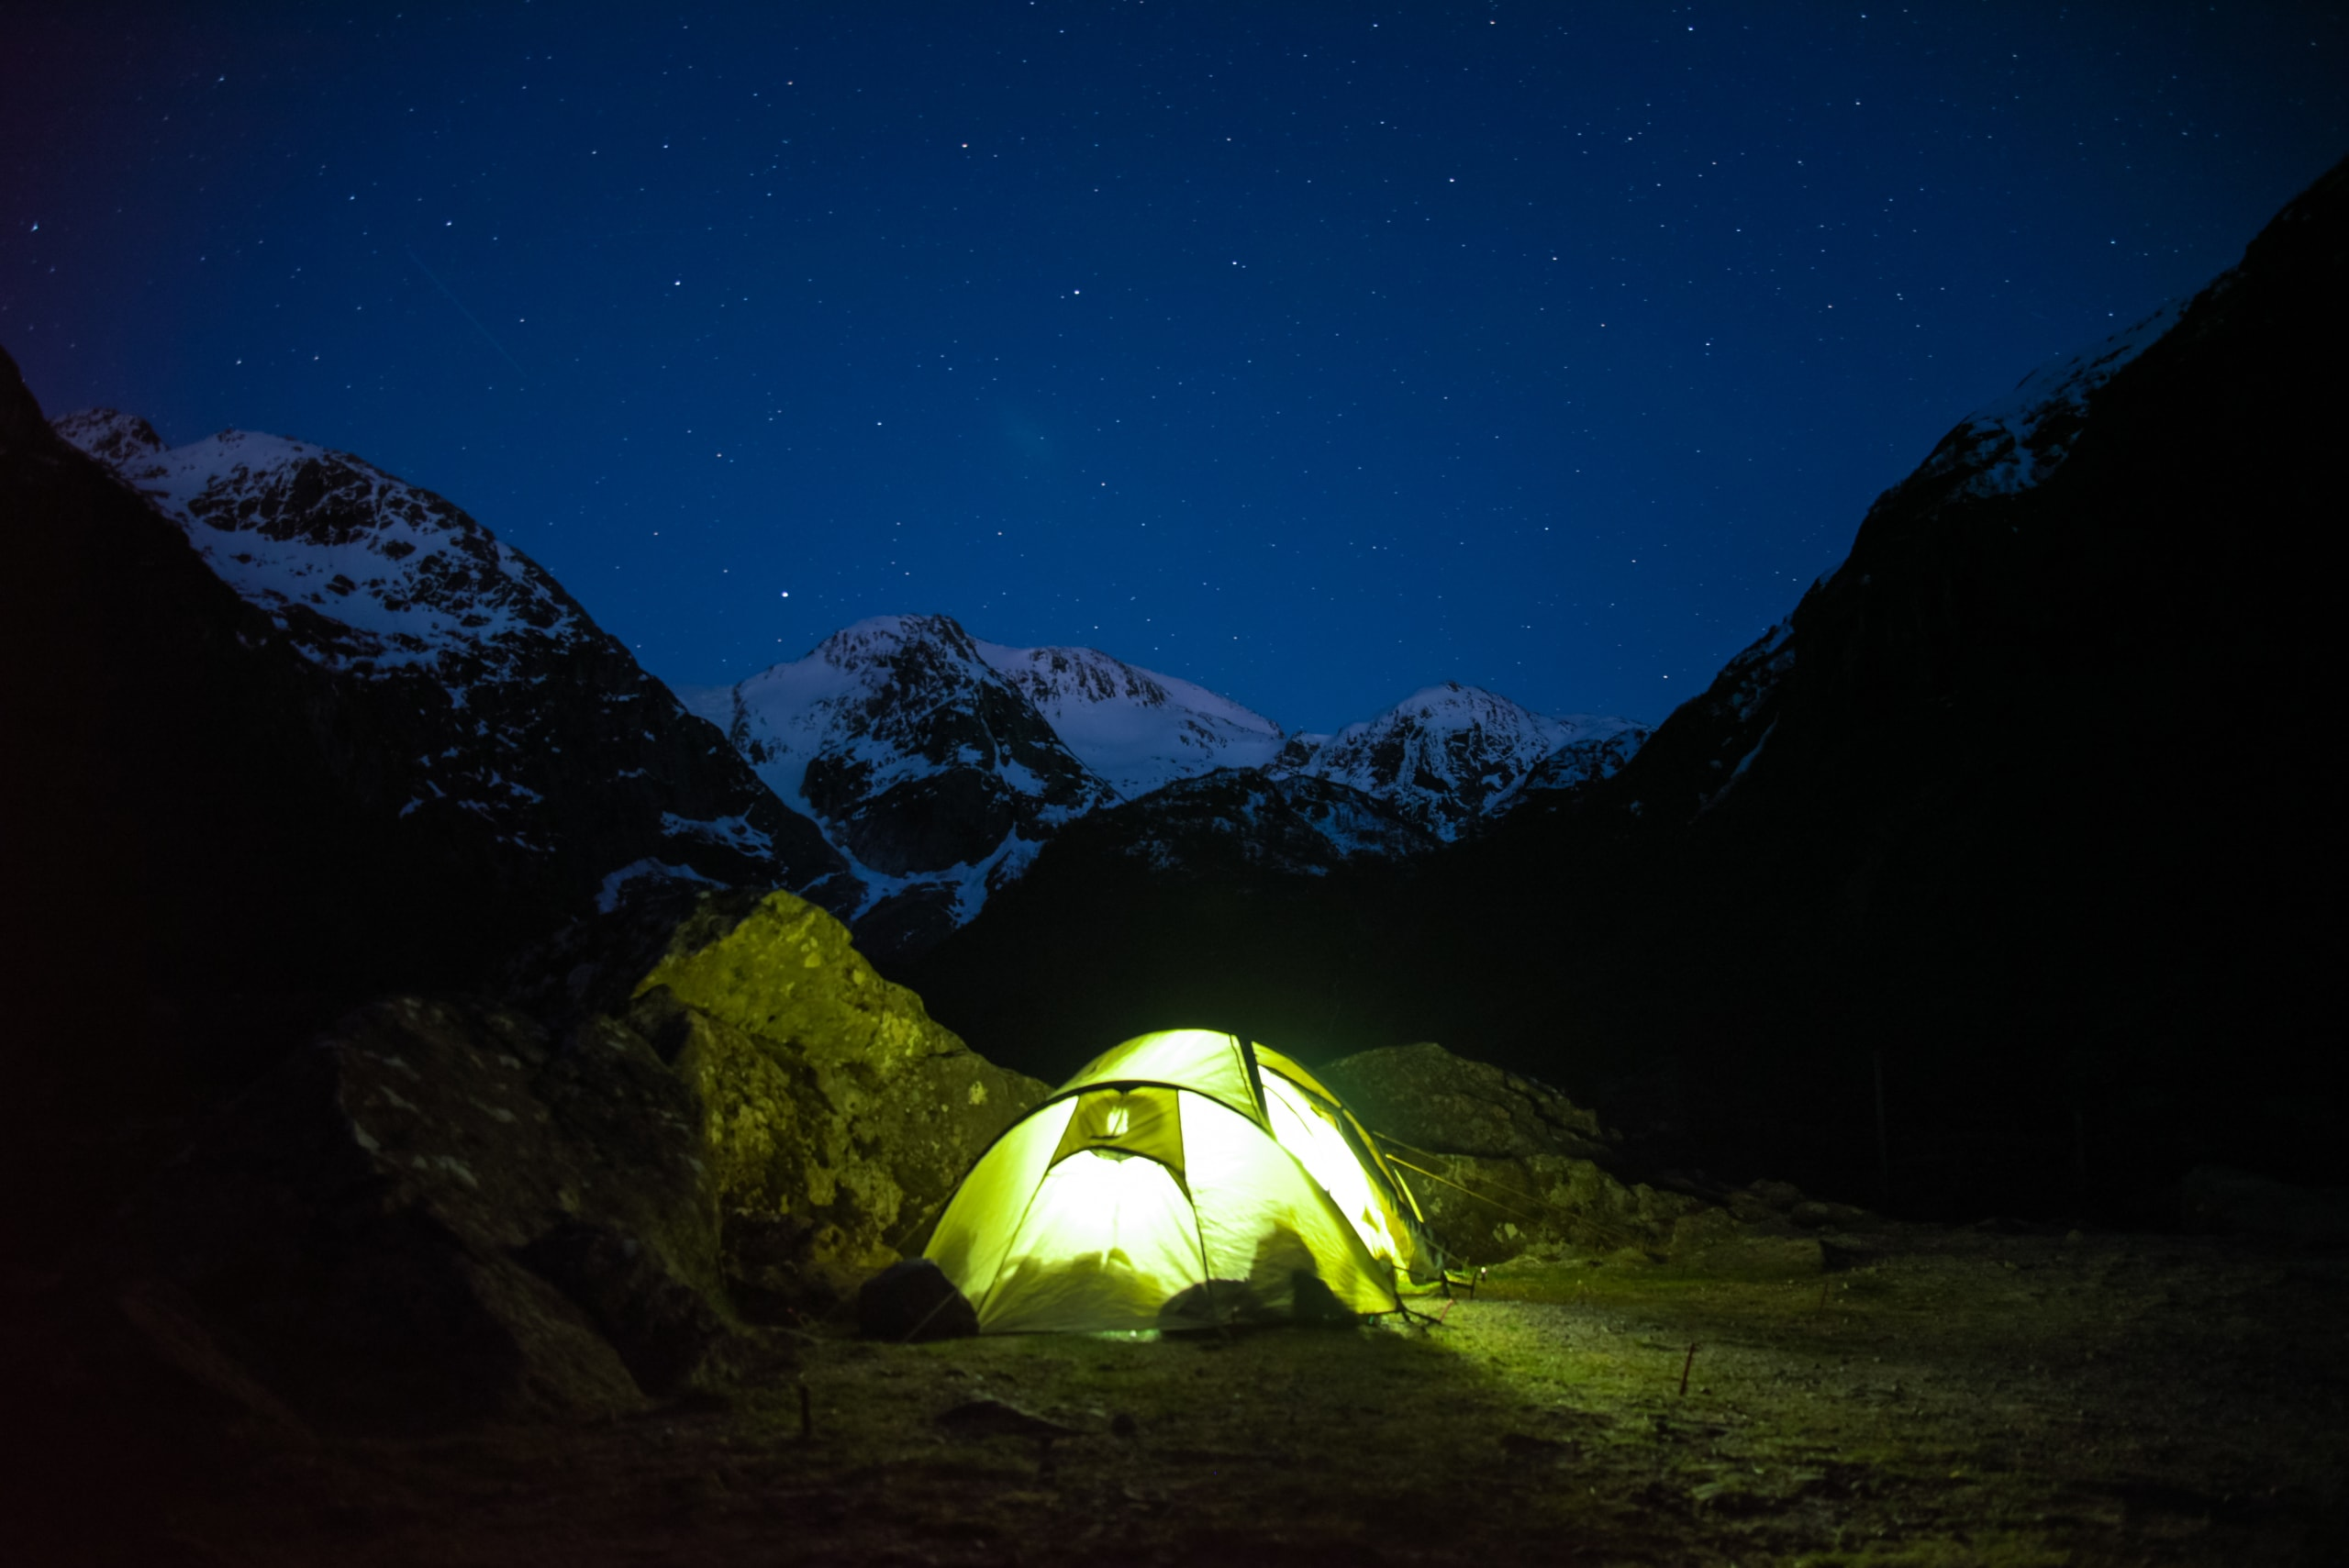 Sleeping outside in tents under the starry sky